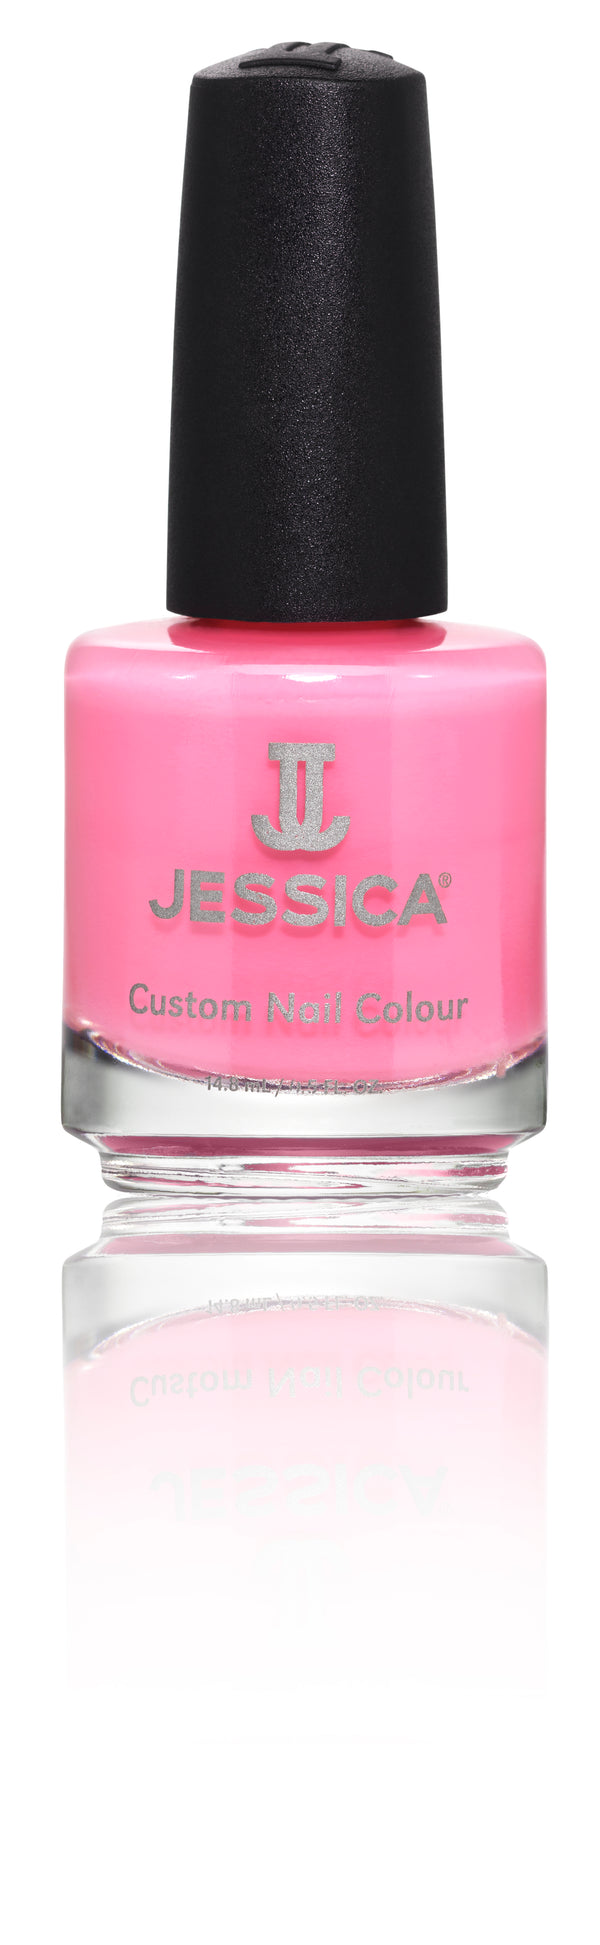 Geleration Colours Jessica Cosmetics